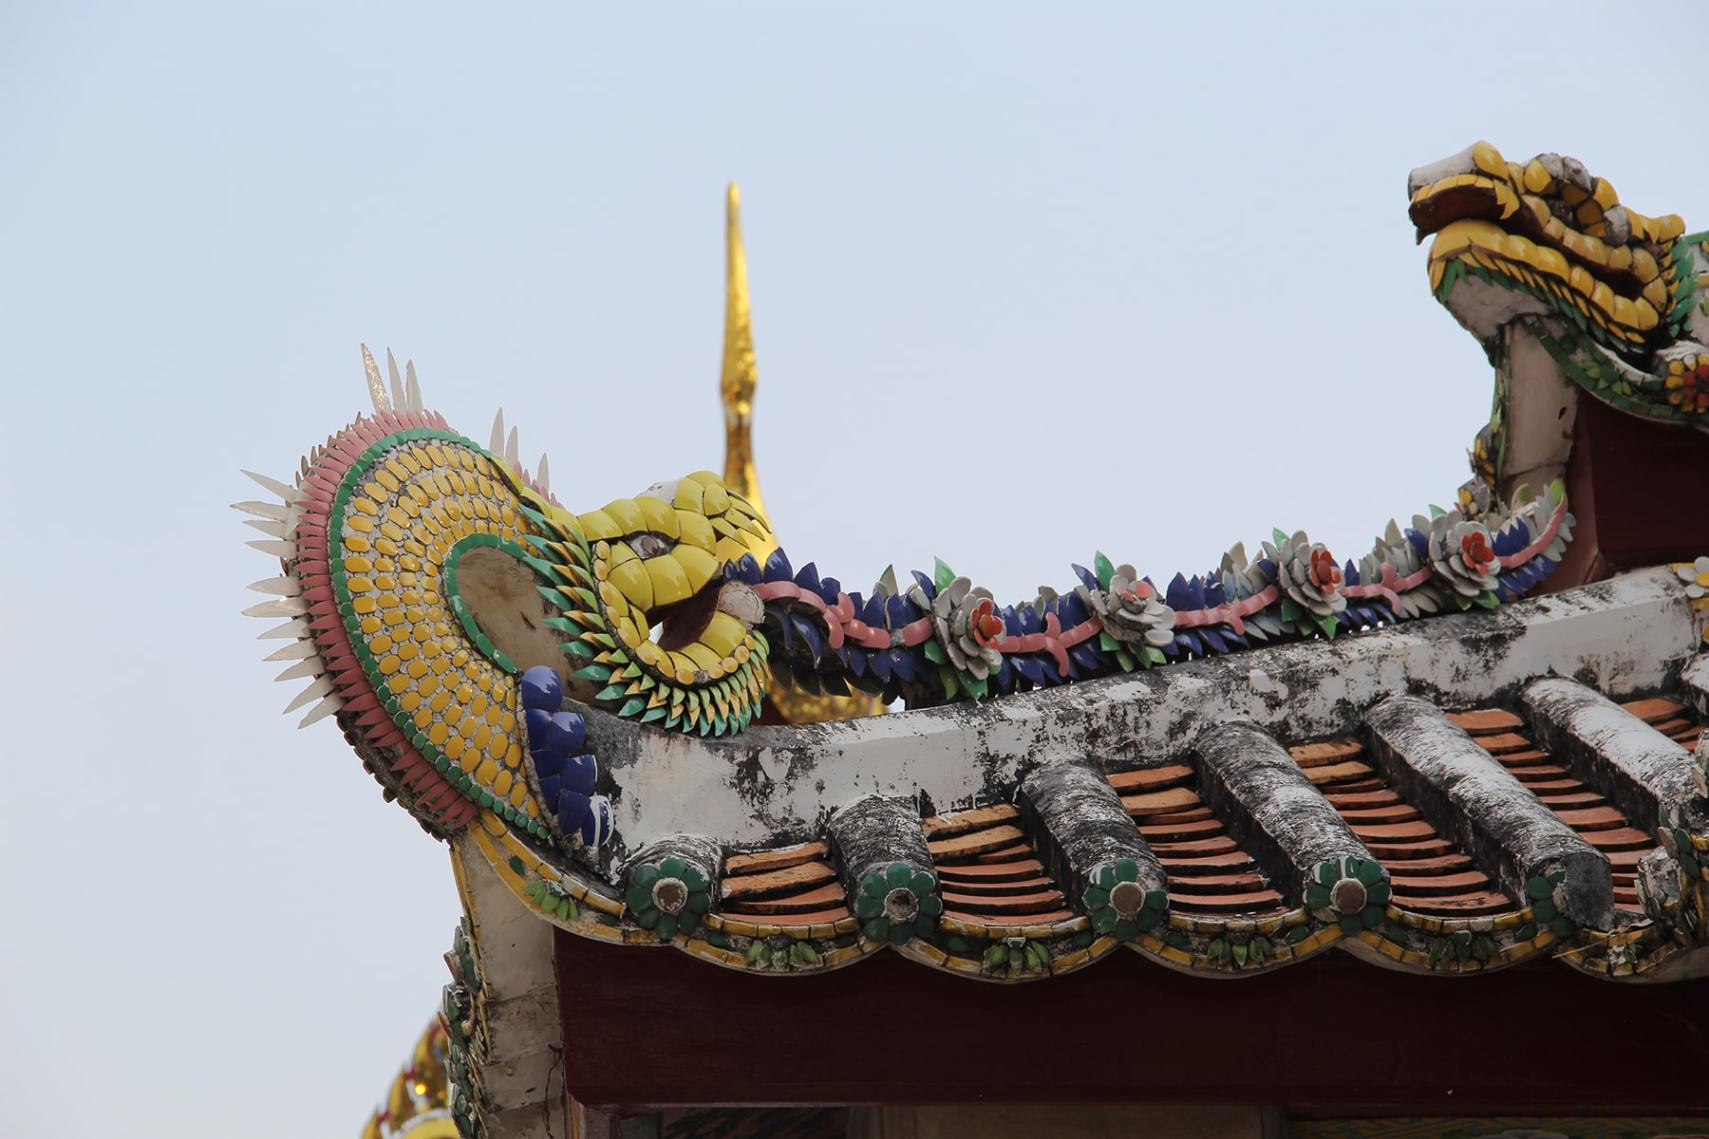 Colourful dragon on a roof of a temple in Wat Pho, Bangkok